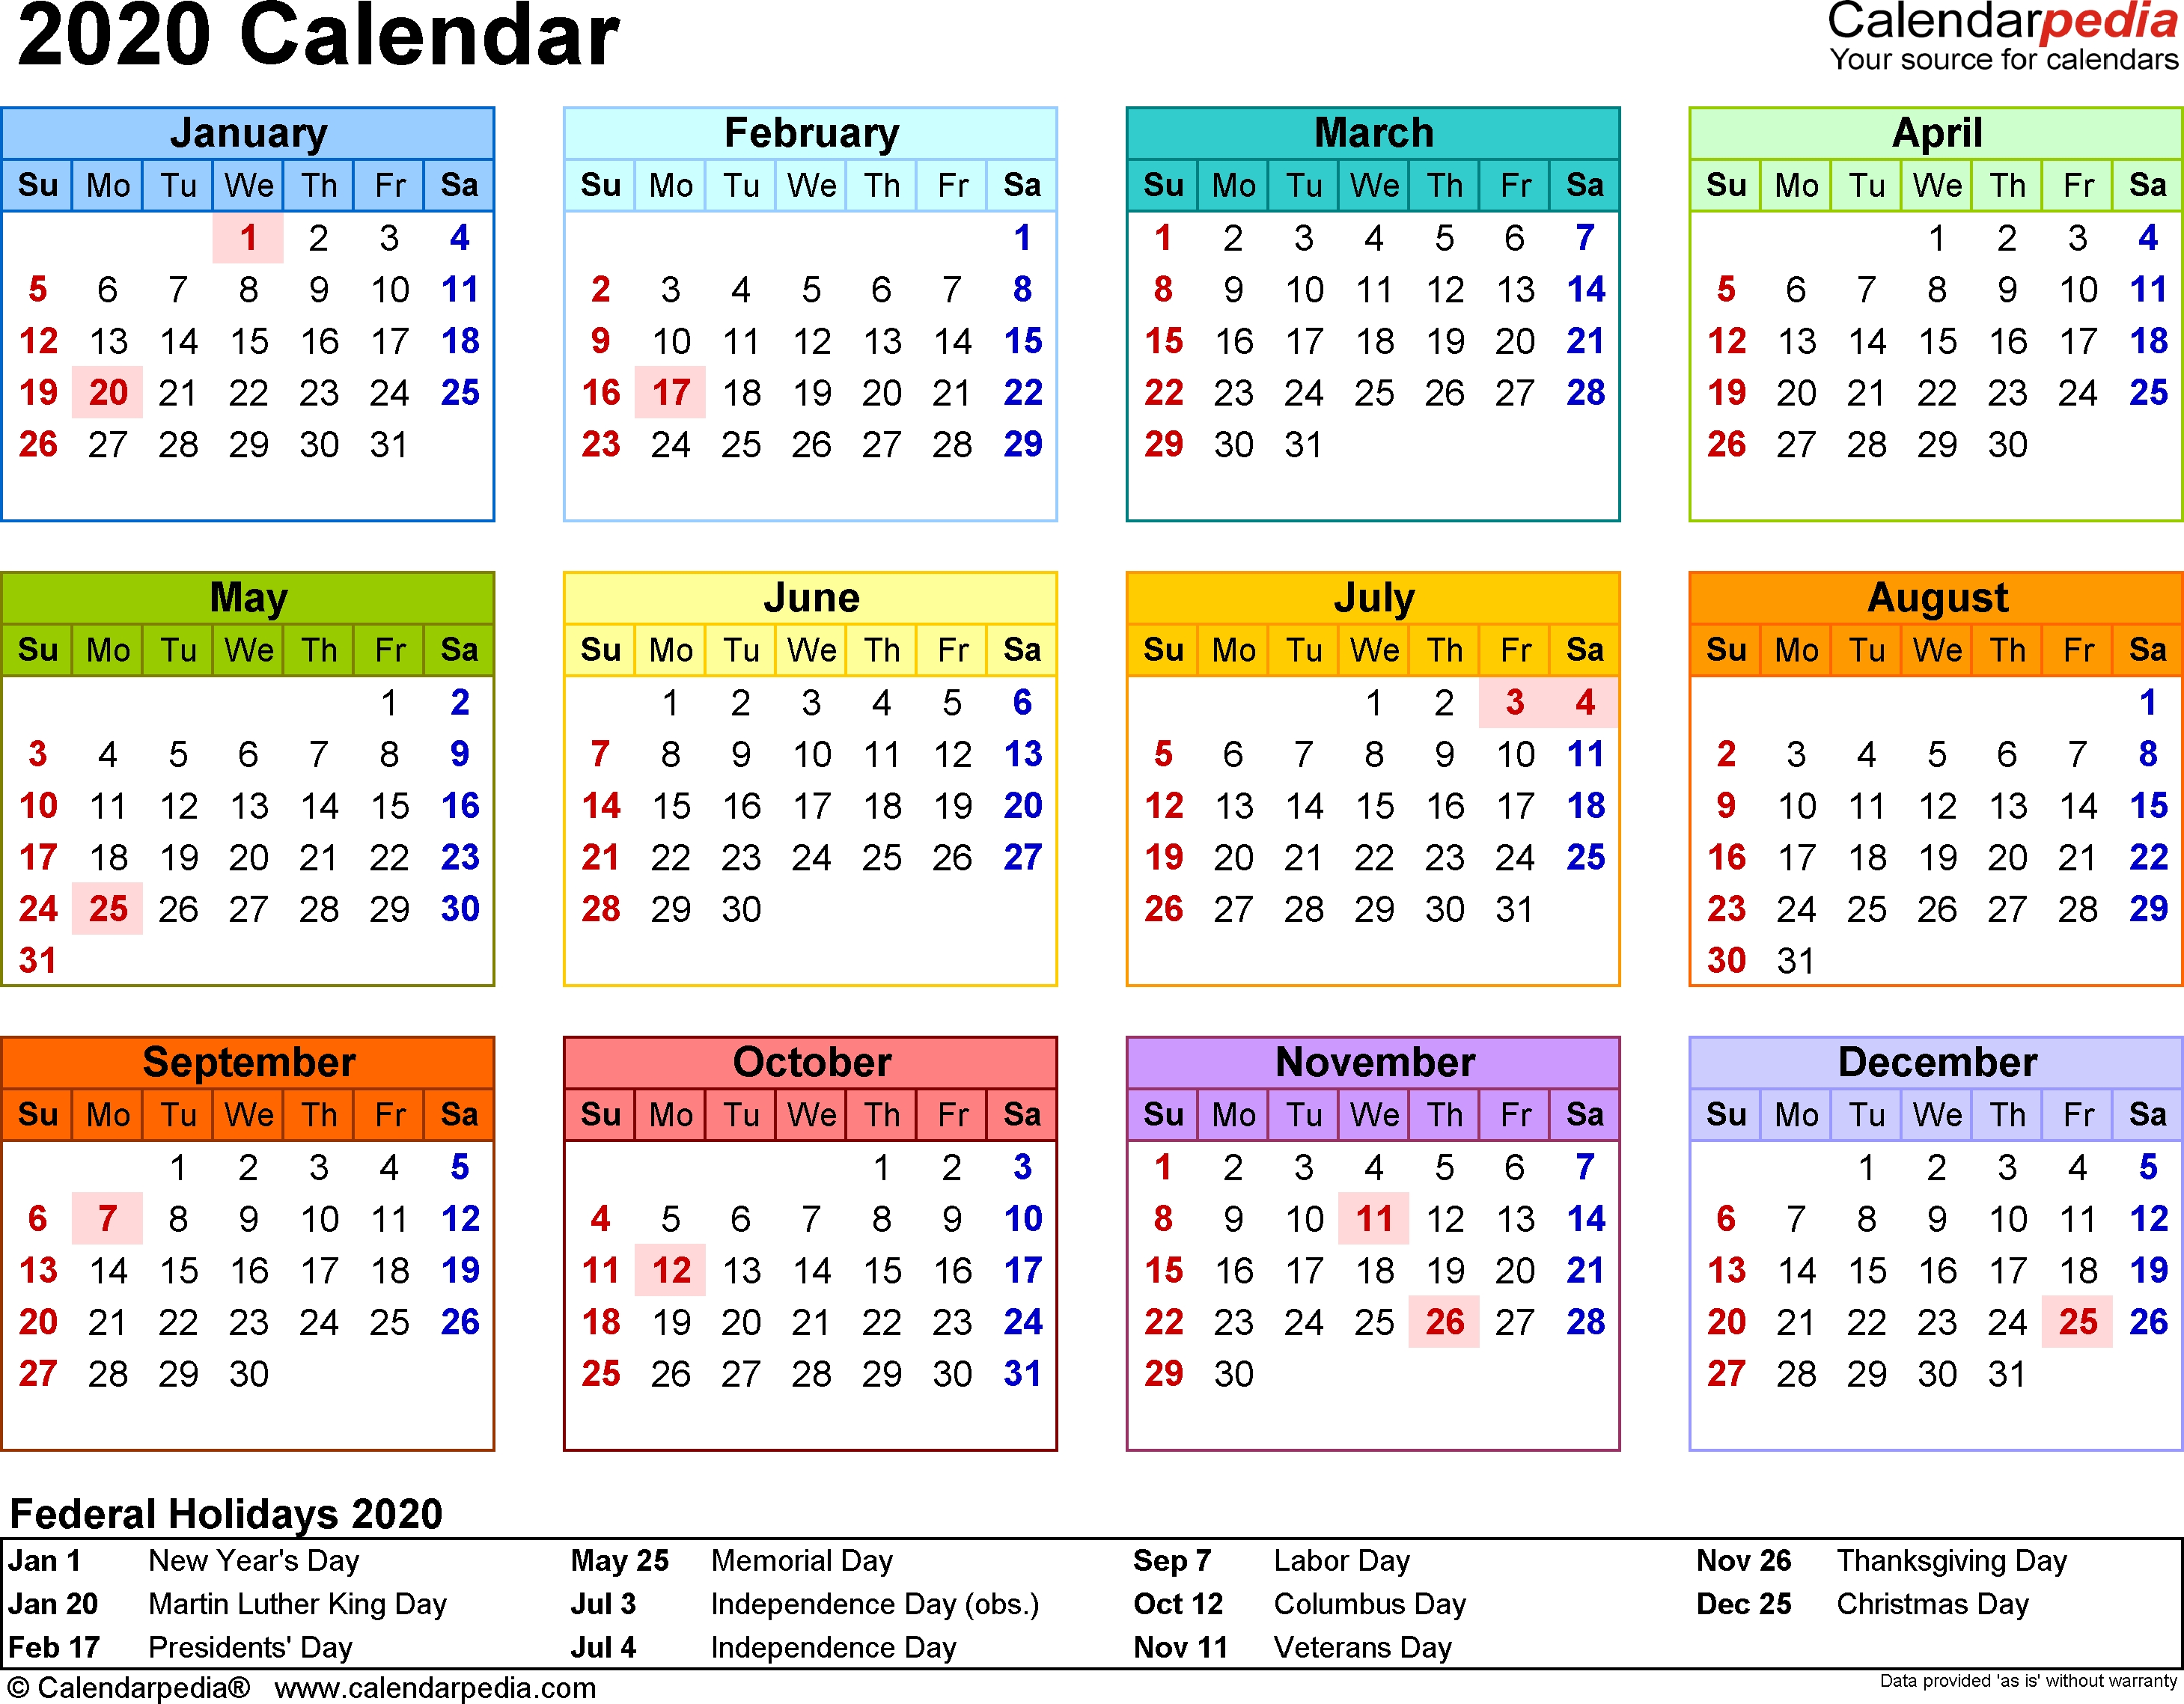 2020 Calendar - Download 18 Free Printable Excel Templates-Is All International School On Malaysia Have The Same School Holidays For 2020